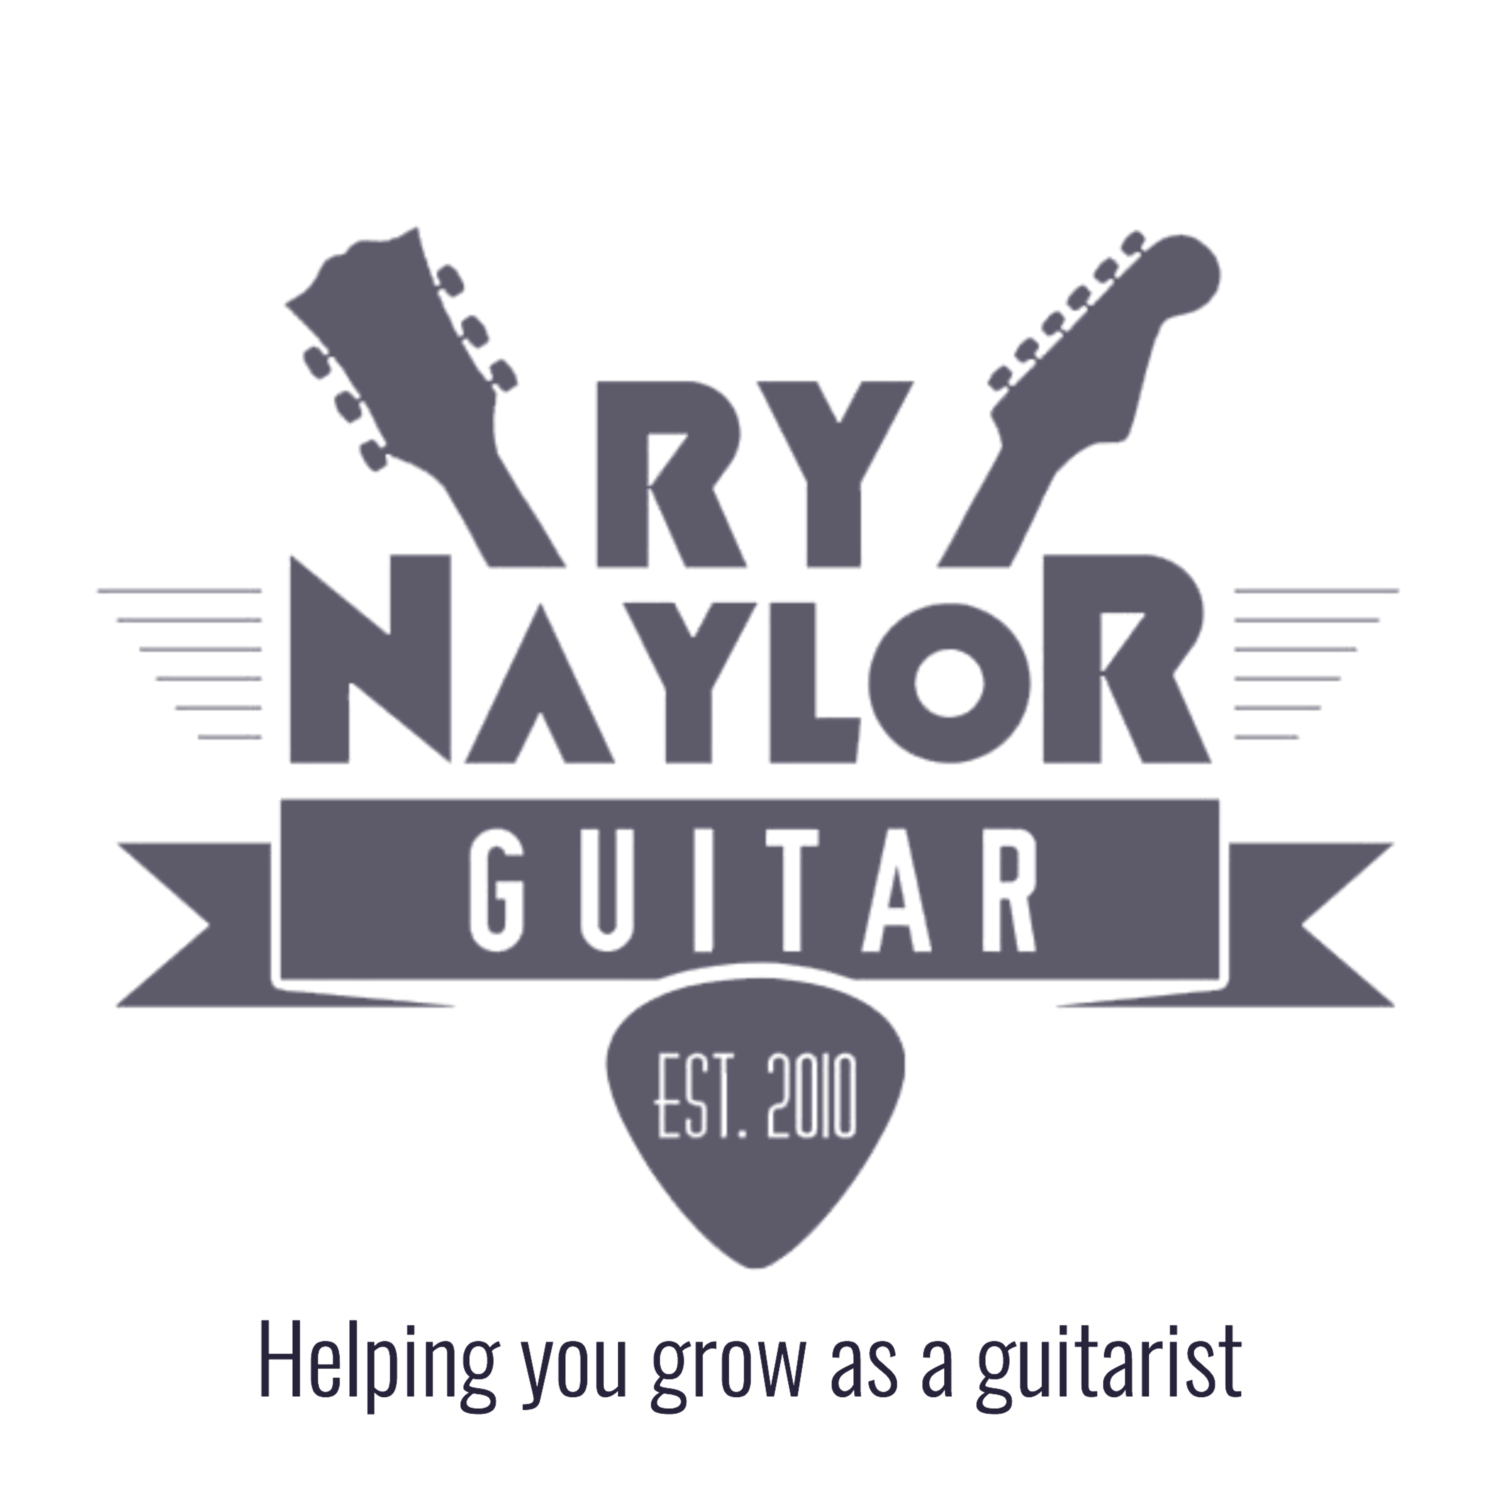 Ry Naylor Guitar - Free Online Guitar Lessons